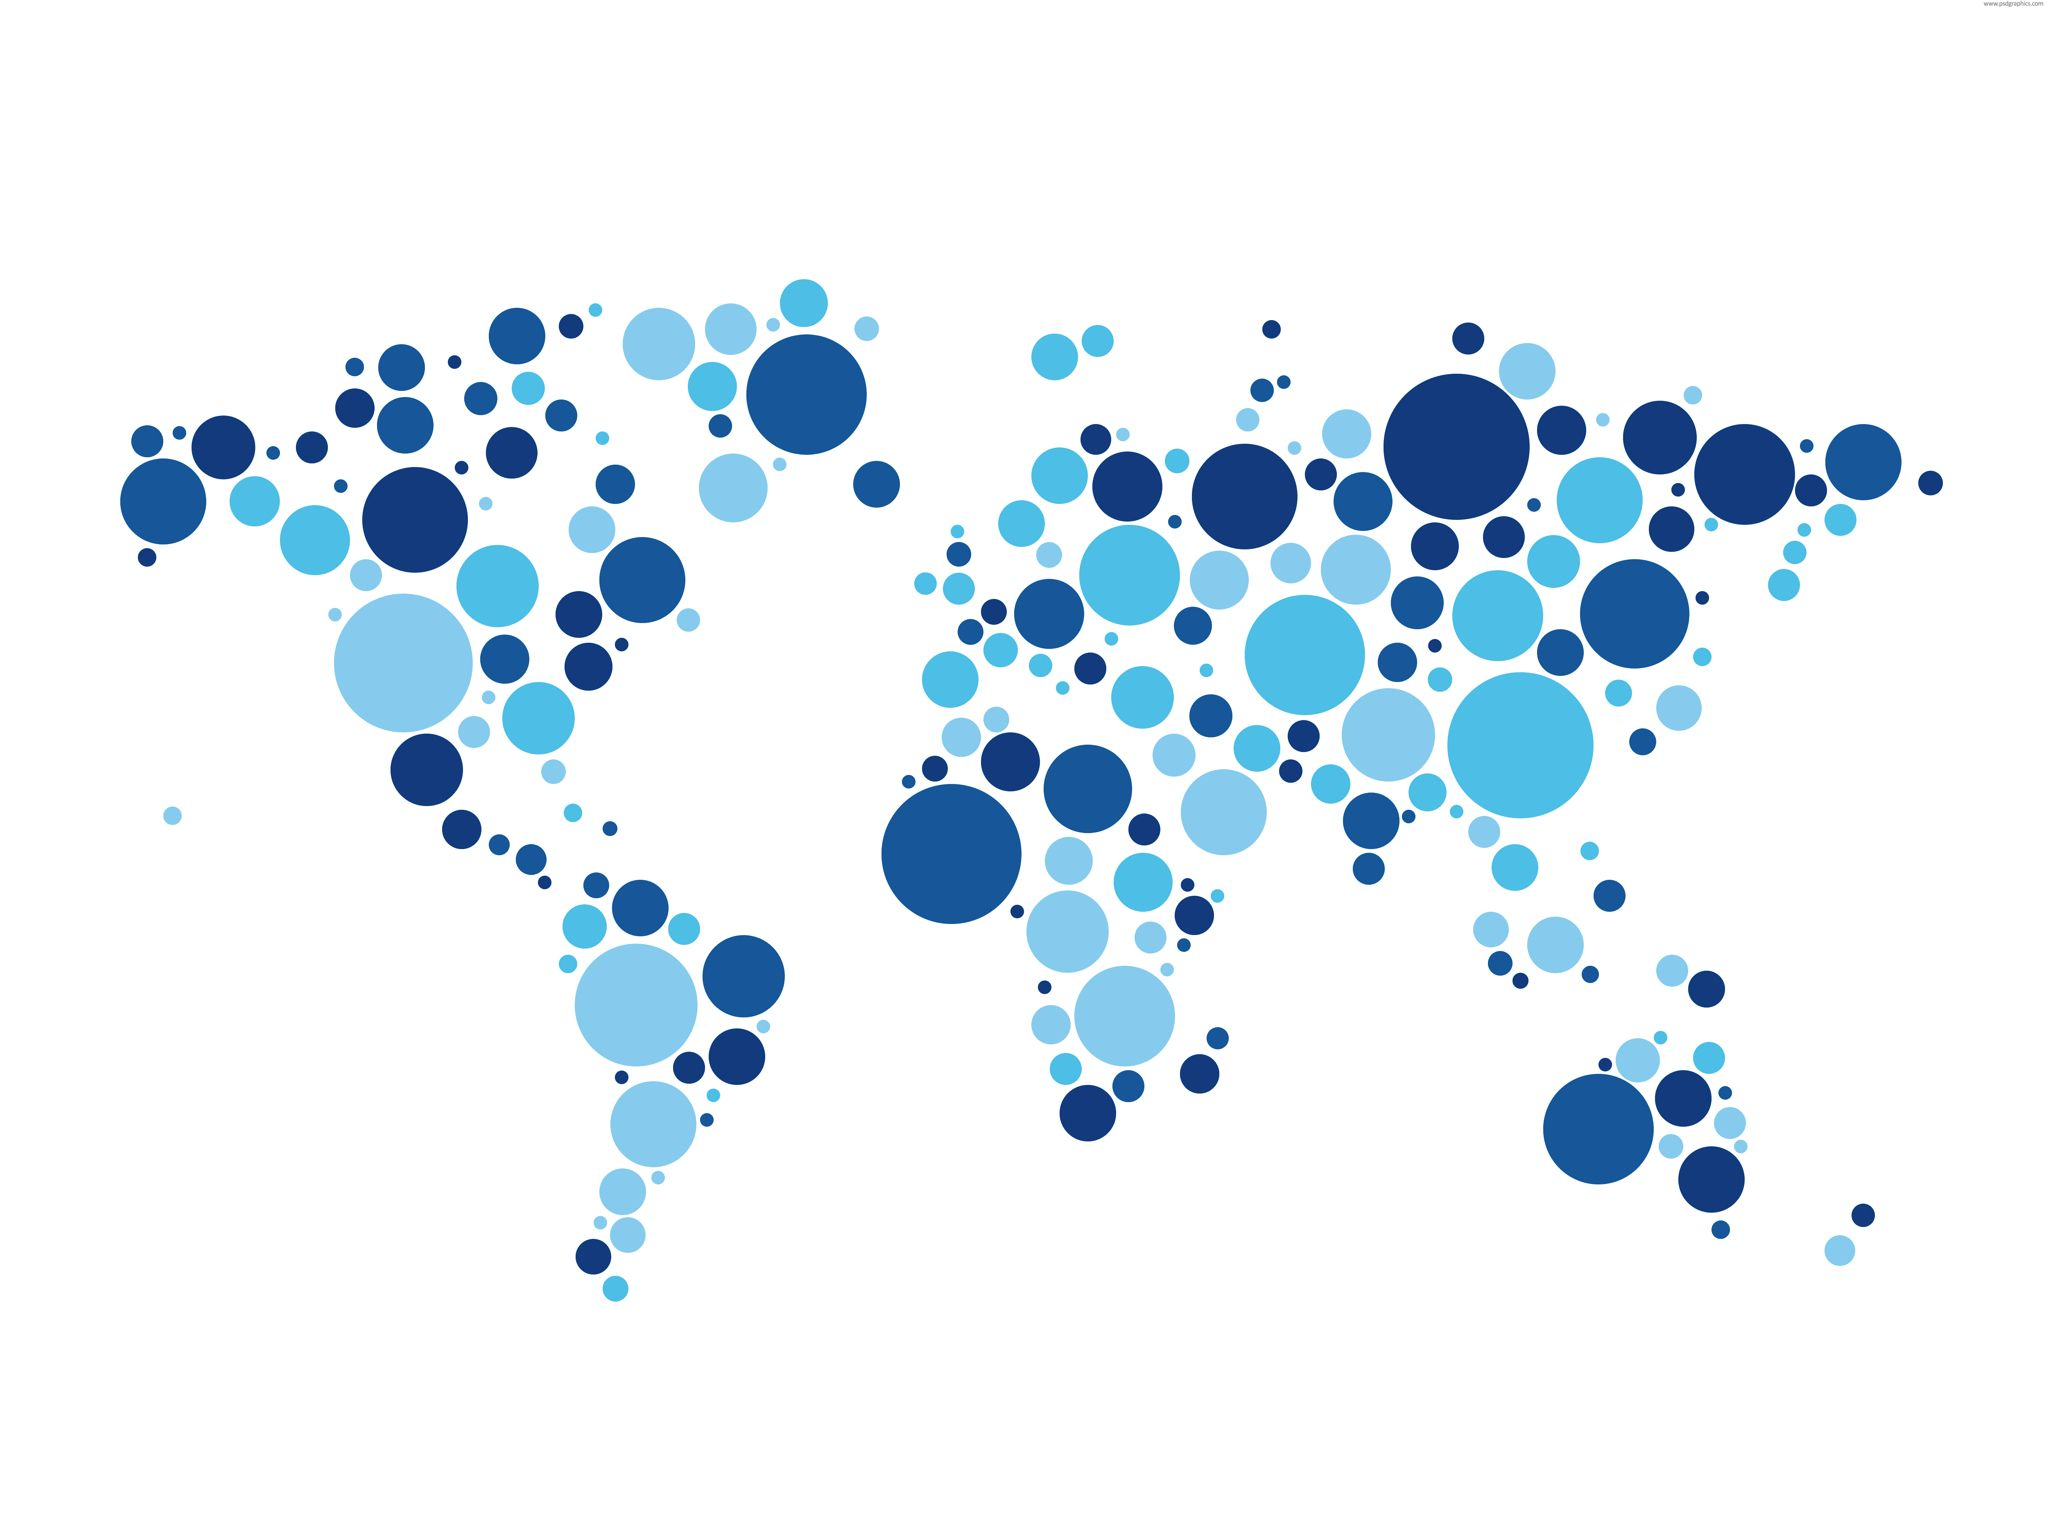 A world map made by blue dots world maps pinterest in the article we like to share free world map file format psd sv ai eps gumiabroncs Images